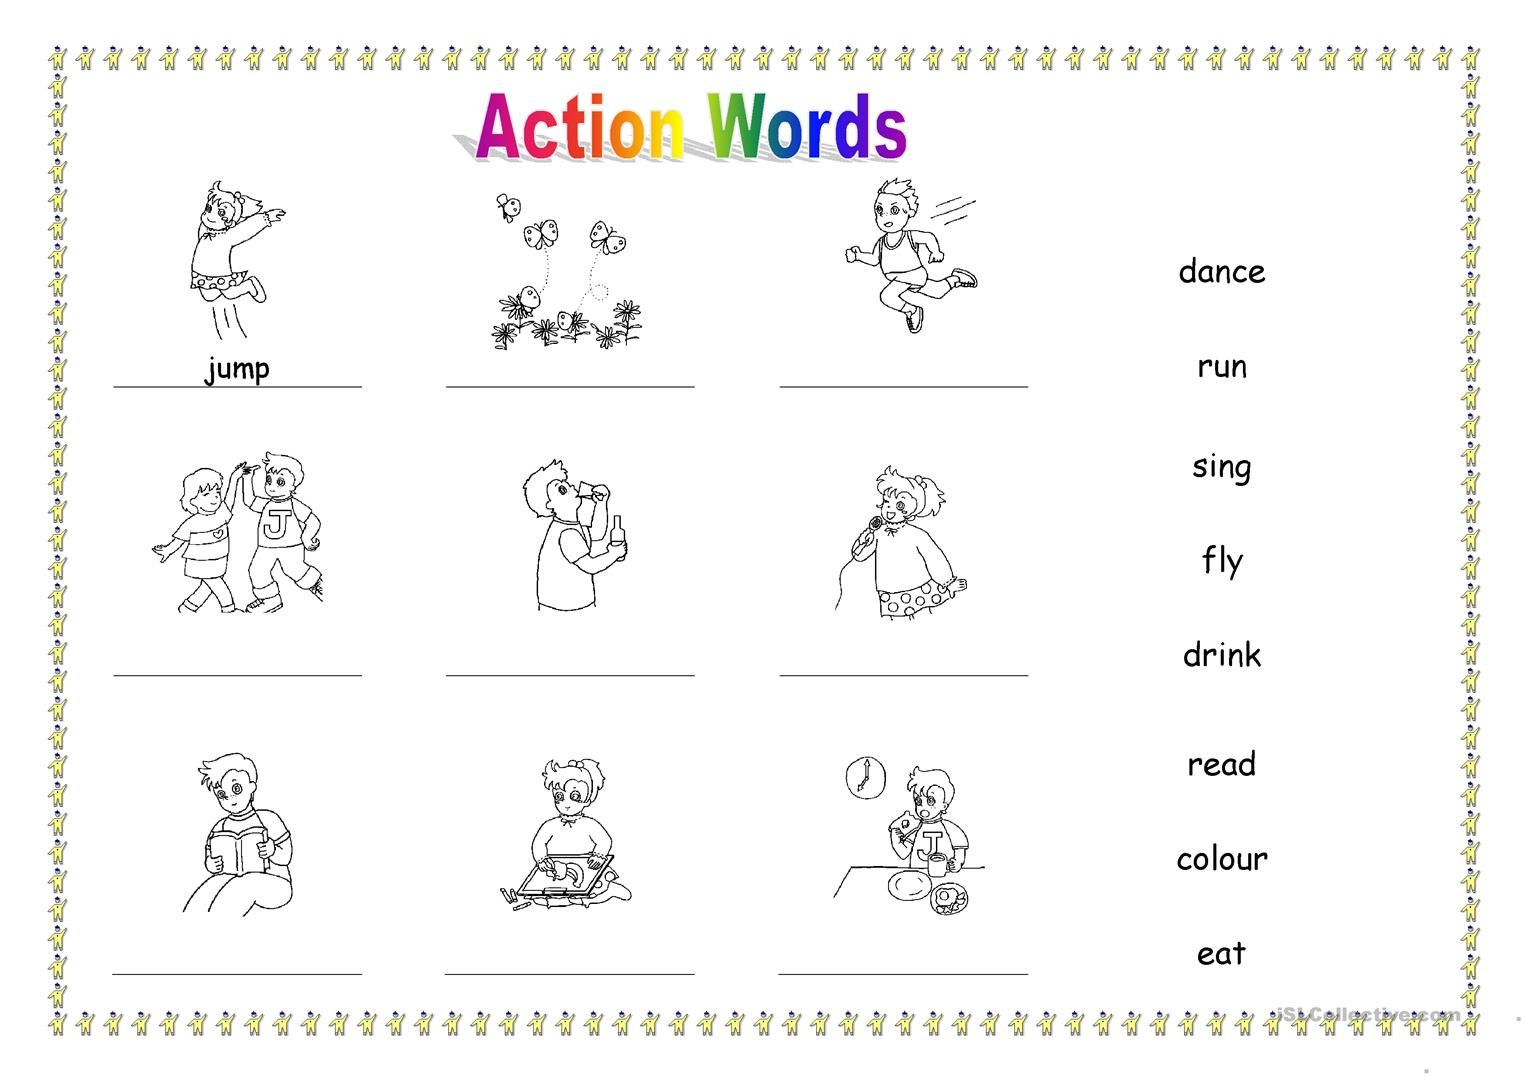 25 Free Esl Action Words Worksheets Printable For